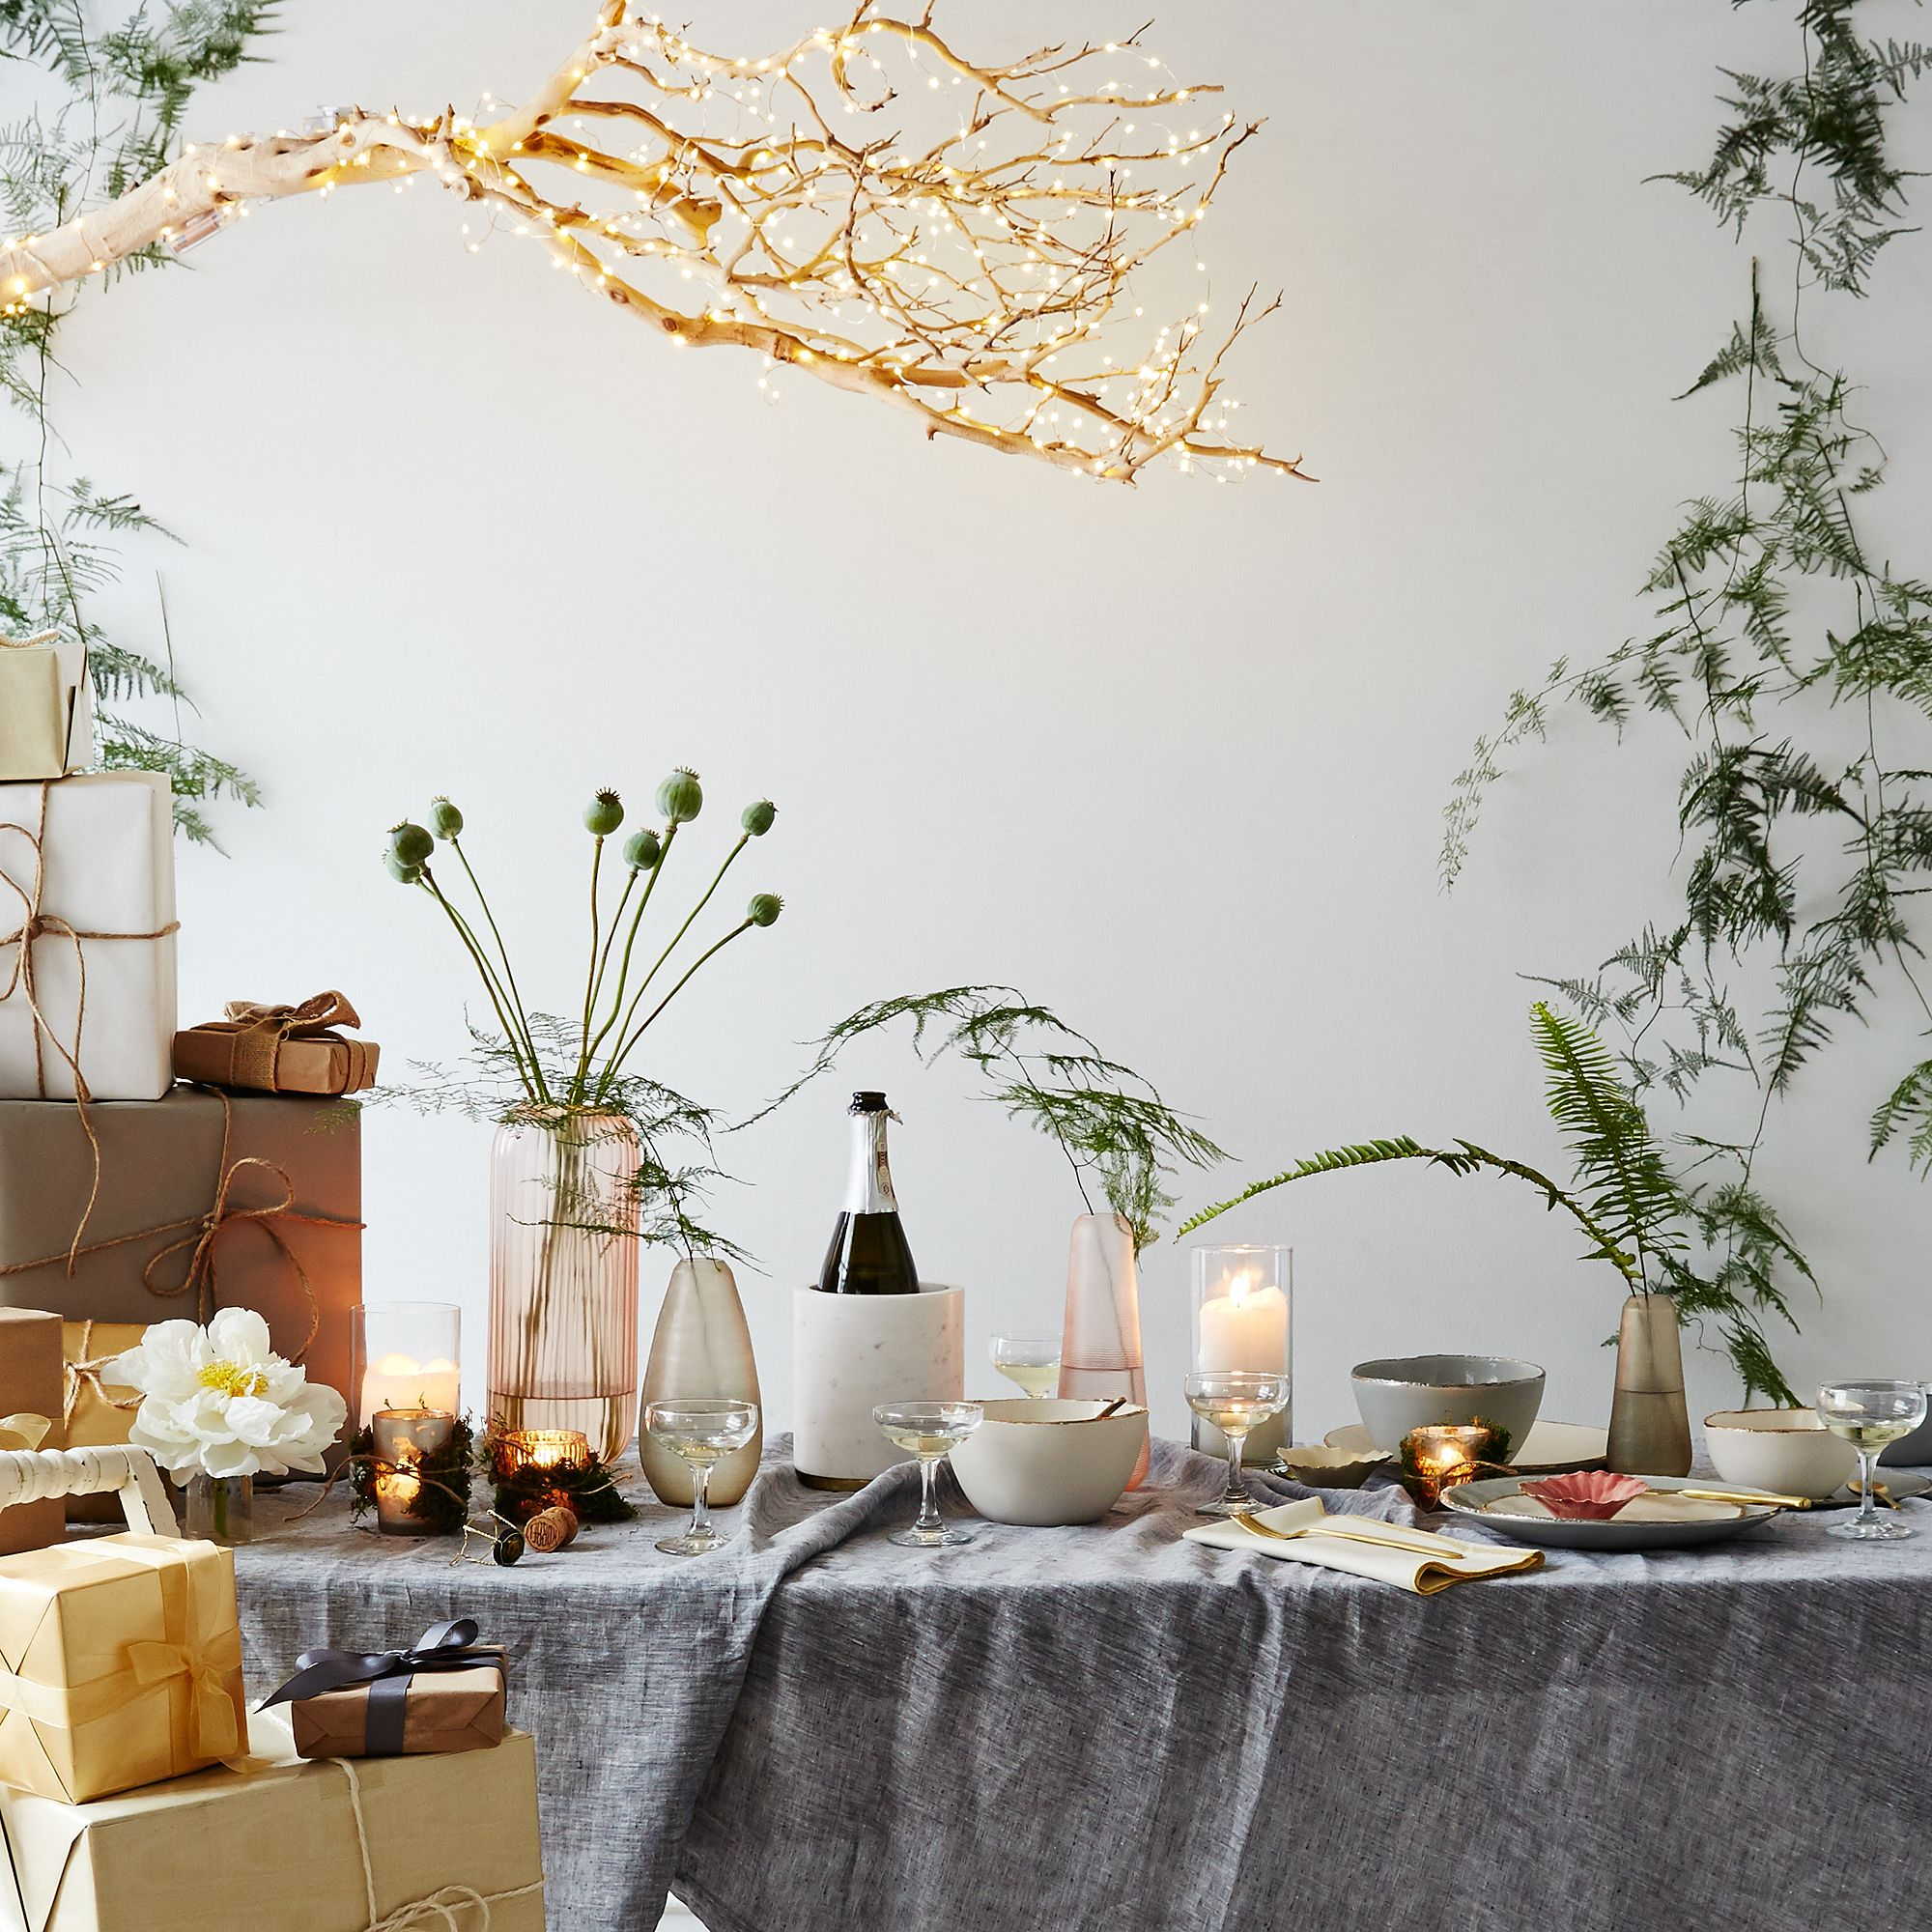 5 Ways to Create a Very Impressive, *Truly* No-Stress Holiday Table